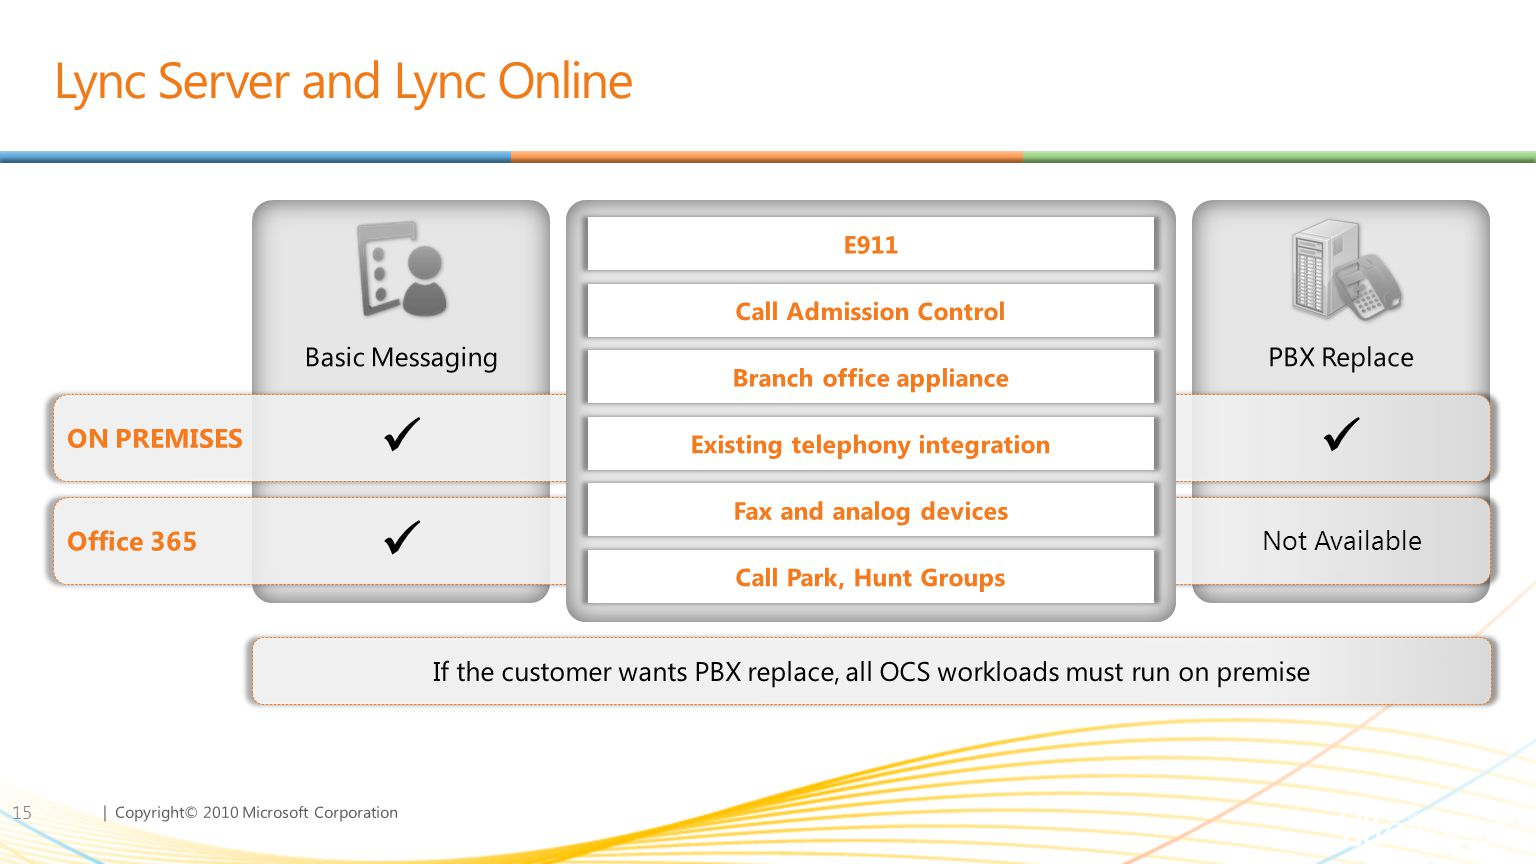 | Copyright© 2010 Microsoft Corporation Lync Server and Lync Online 15 Basic Messaging ConferencingVoice PBX Replace Not AvailableFY12